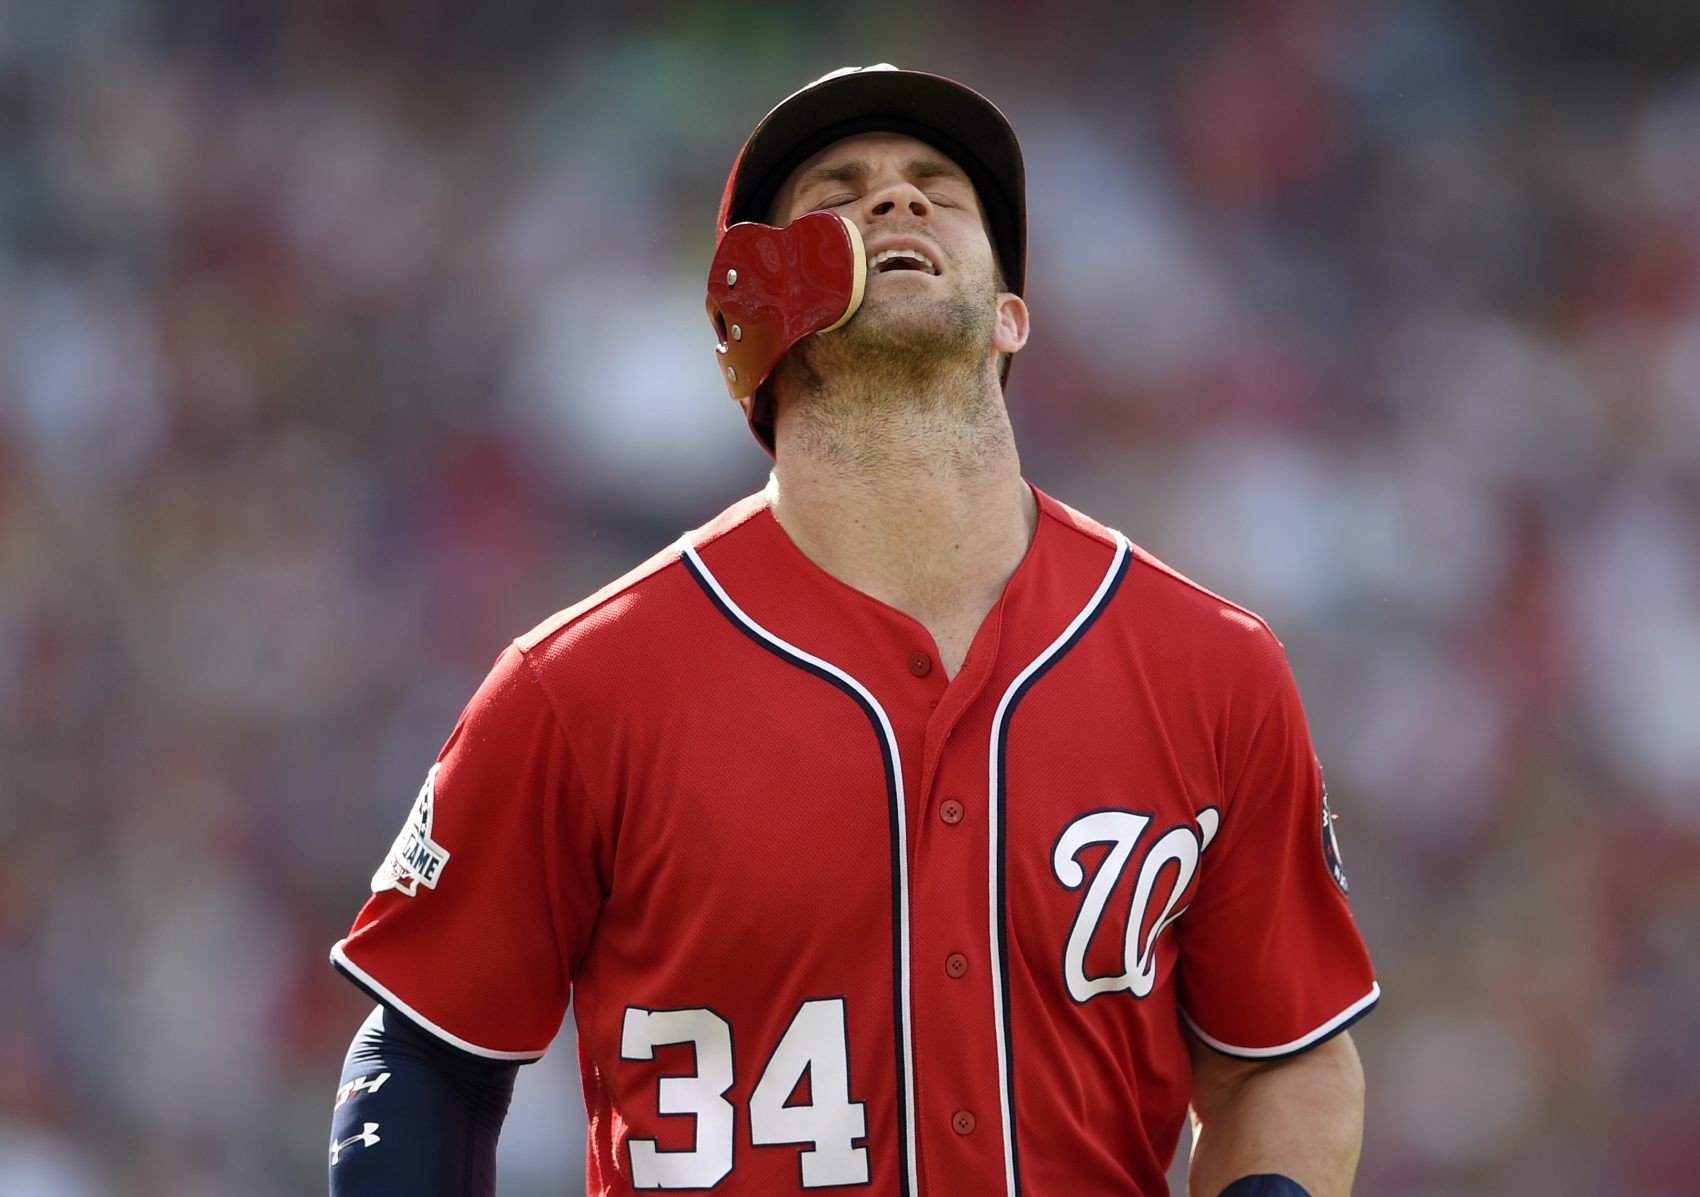 Washington Nationals' Bryce Harper reacts after he lined out during the second inning of a baseball game against the Philadelphia Phillies, Saturday, June 23, 2018, in Washington. (Nick Wass/AP)